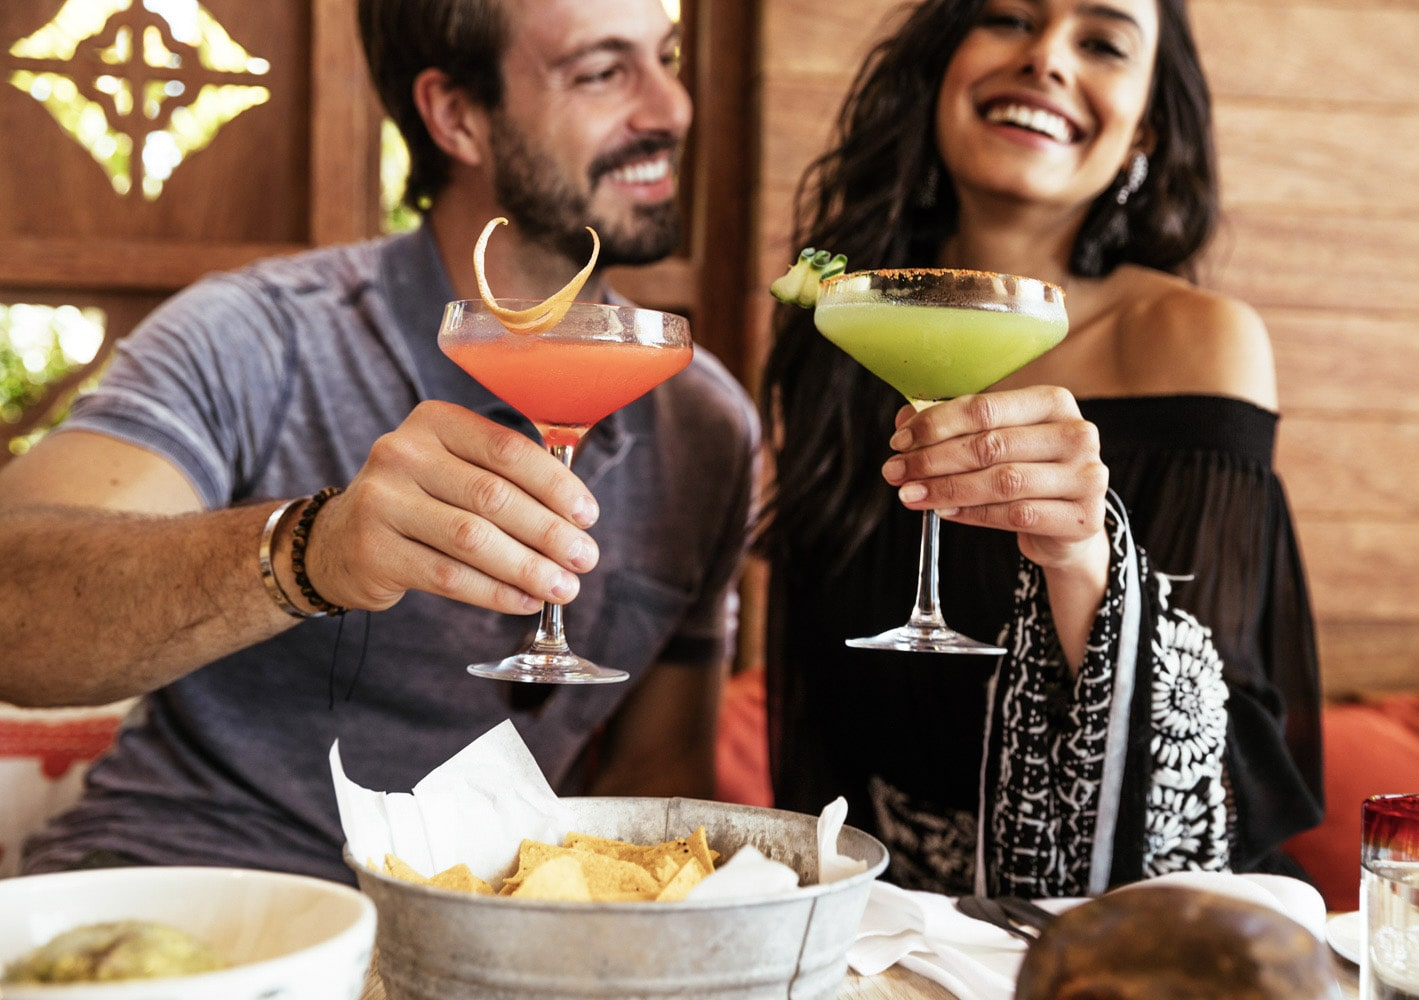 Dining with friends and family at Casa Calavera Los Cabos over authentic Mexican drinks.